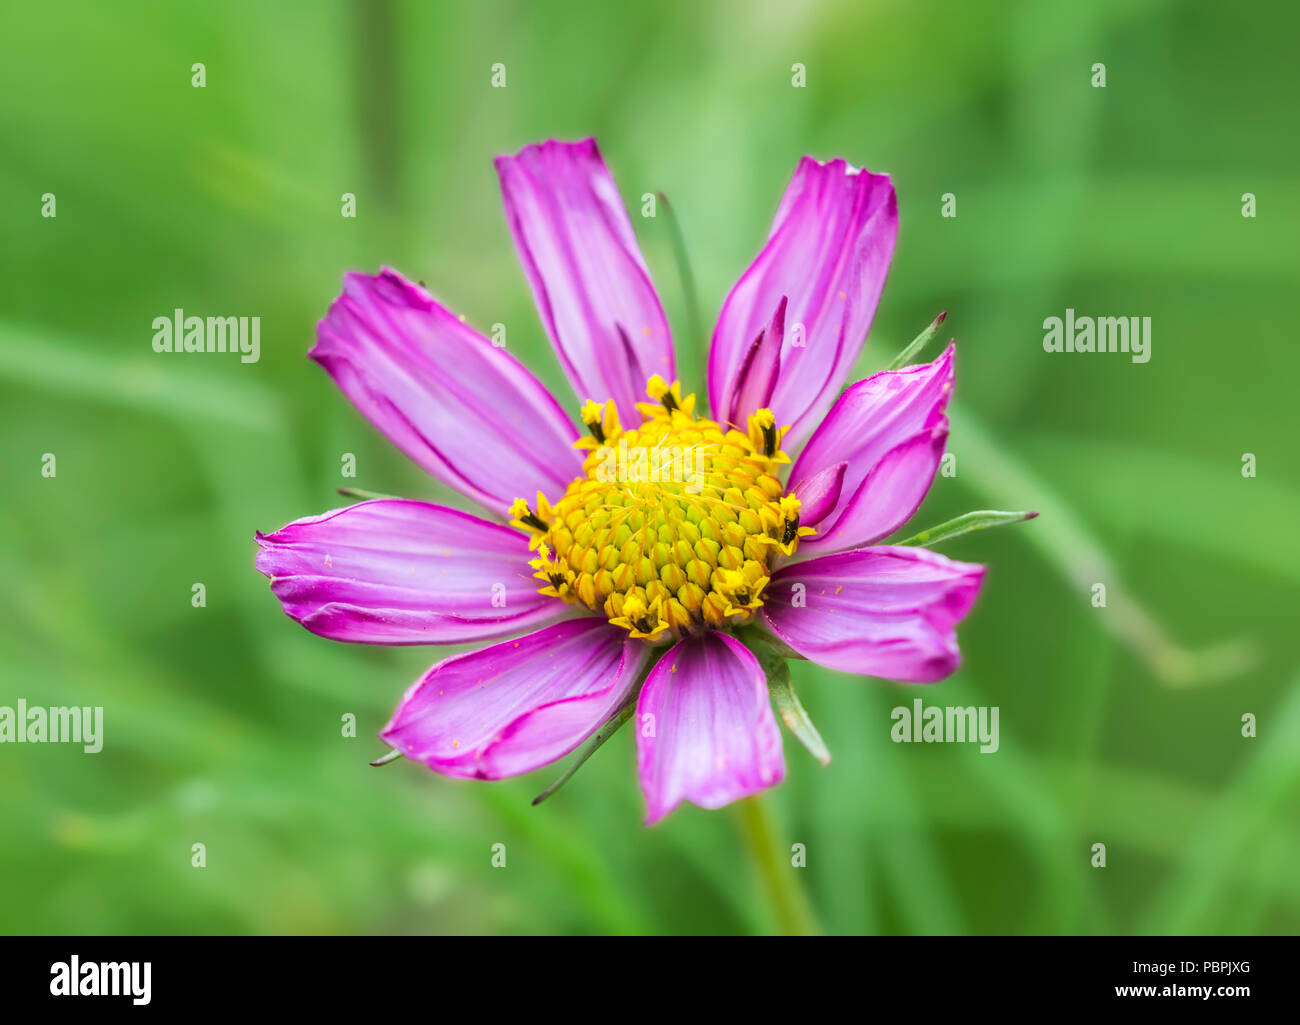 Cosmos bipinnatus cosmea, also known as Mexican Aster or Garden Cosmos, in Summer in West Sussex, England, UK. Pink Cosmos bipinnatus. - Stock Image